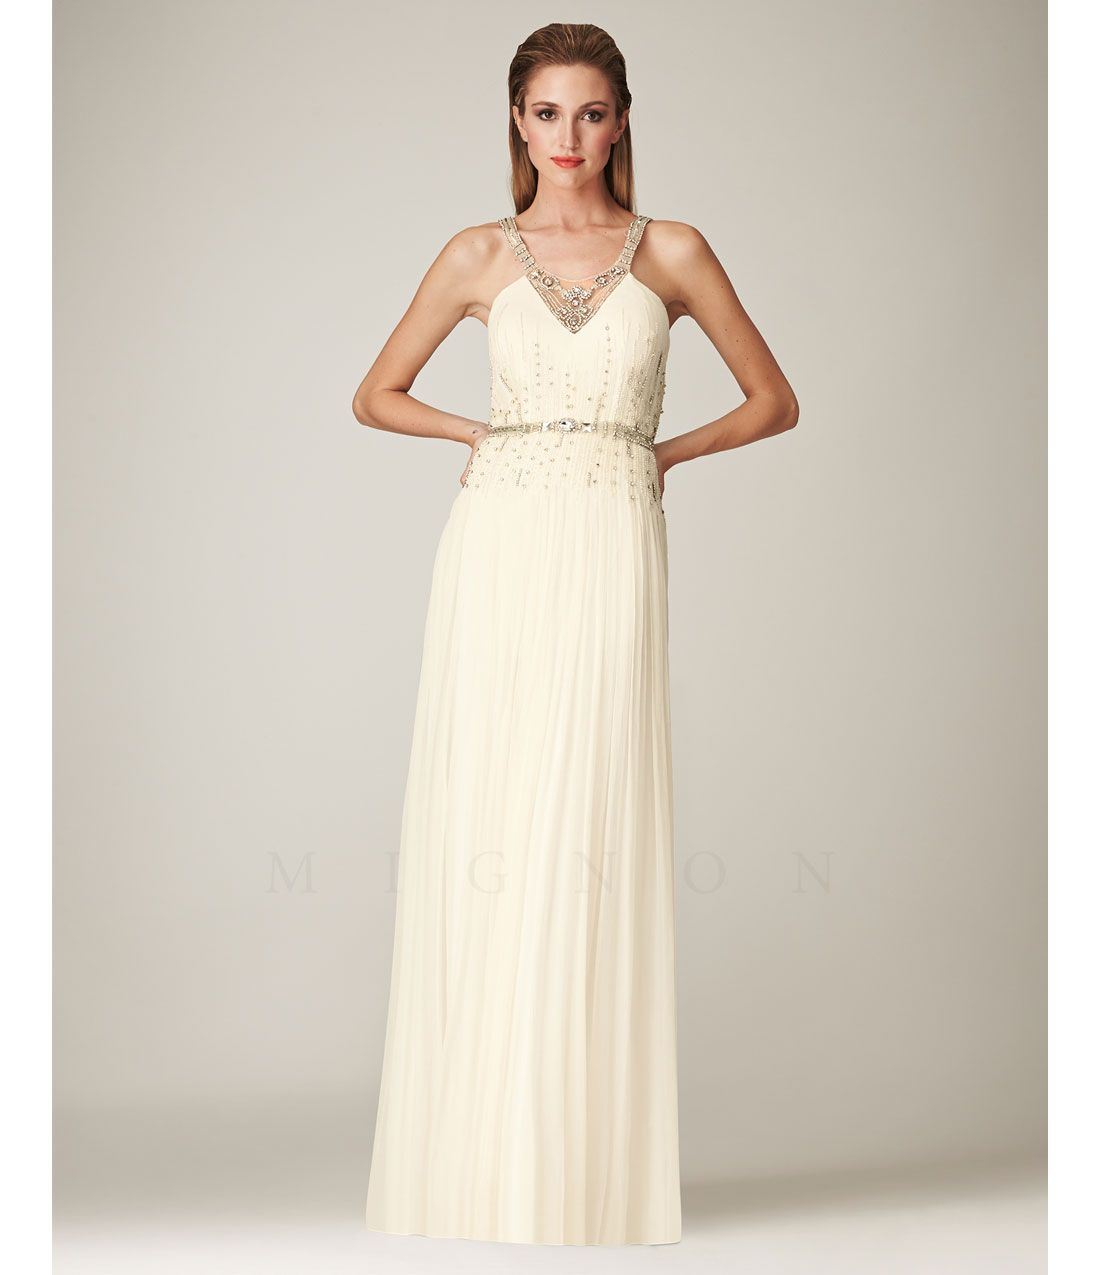 Grecian Prom Dresses 2012 | Dress images